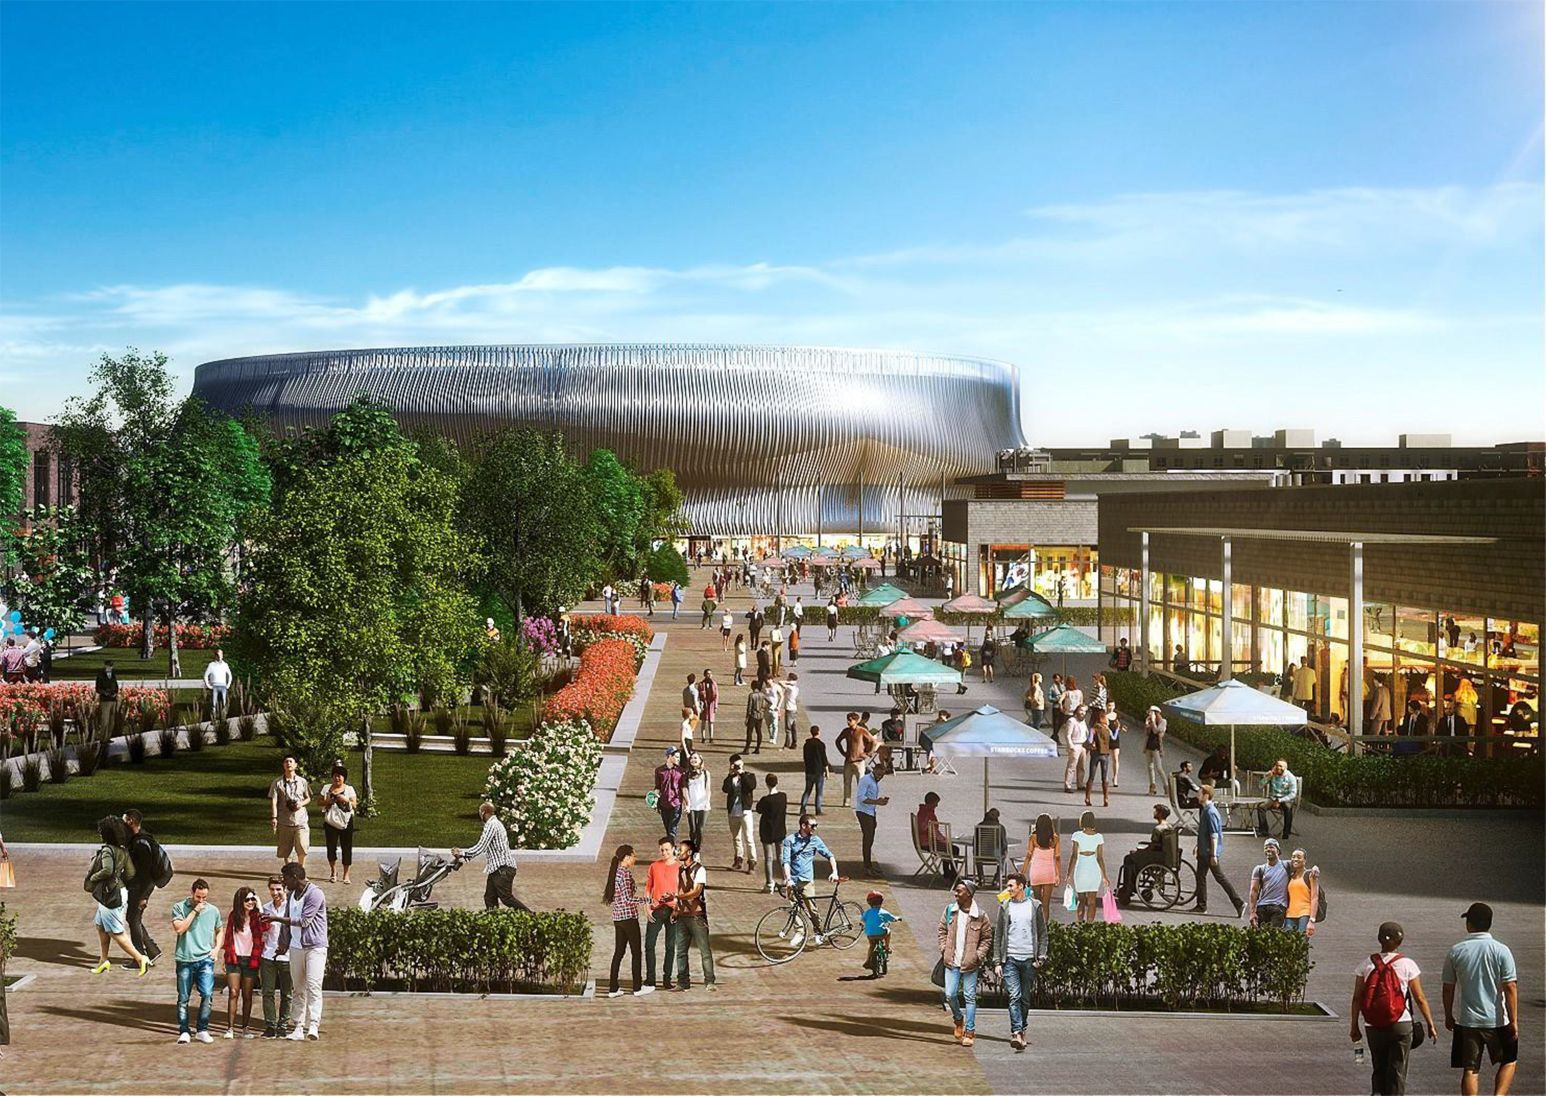 A rendering of the proposed Nassau Hub Site, which currently includes the Nassau Coliseum. Credit BSE Global/RXR Realty.